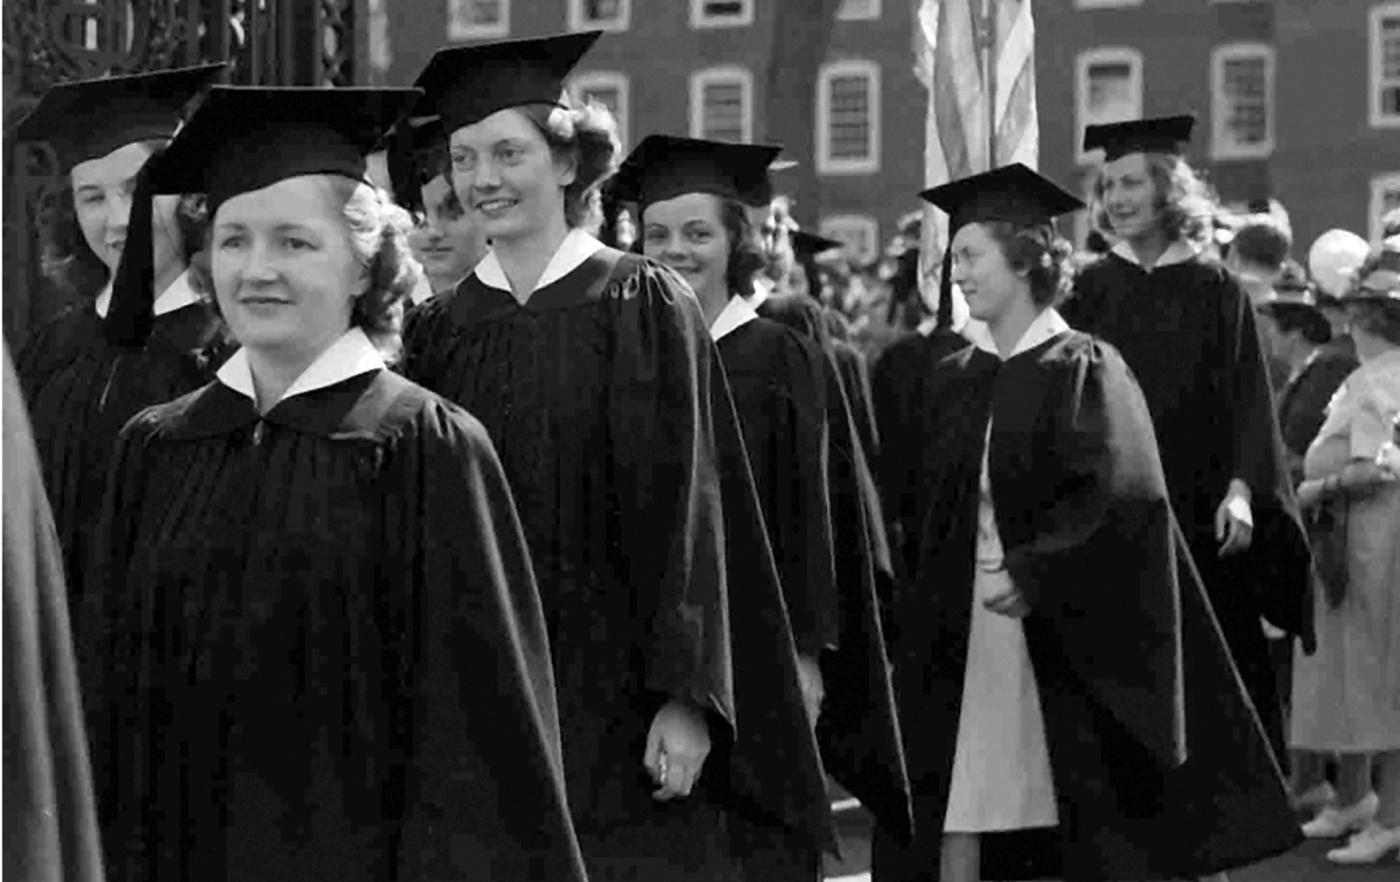 Pembroke grads from 1940.